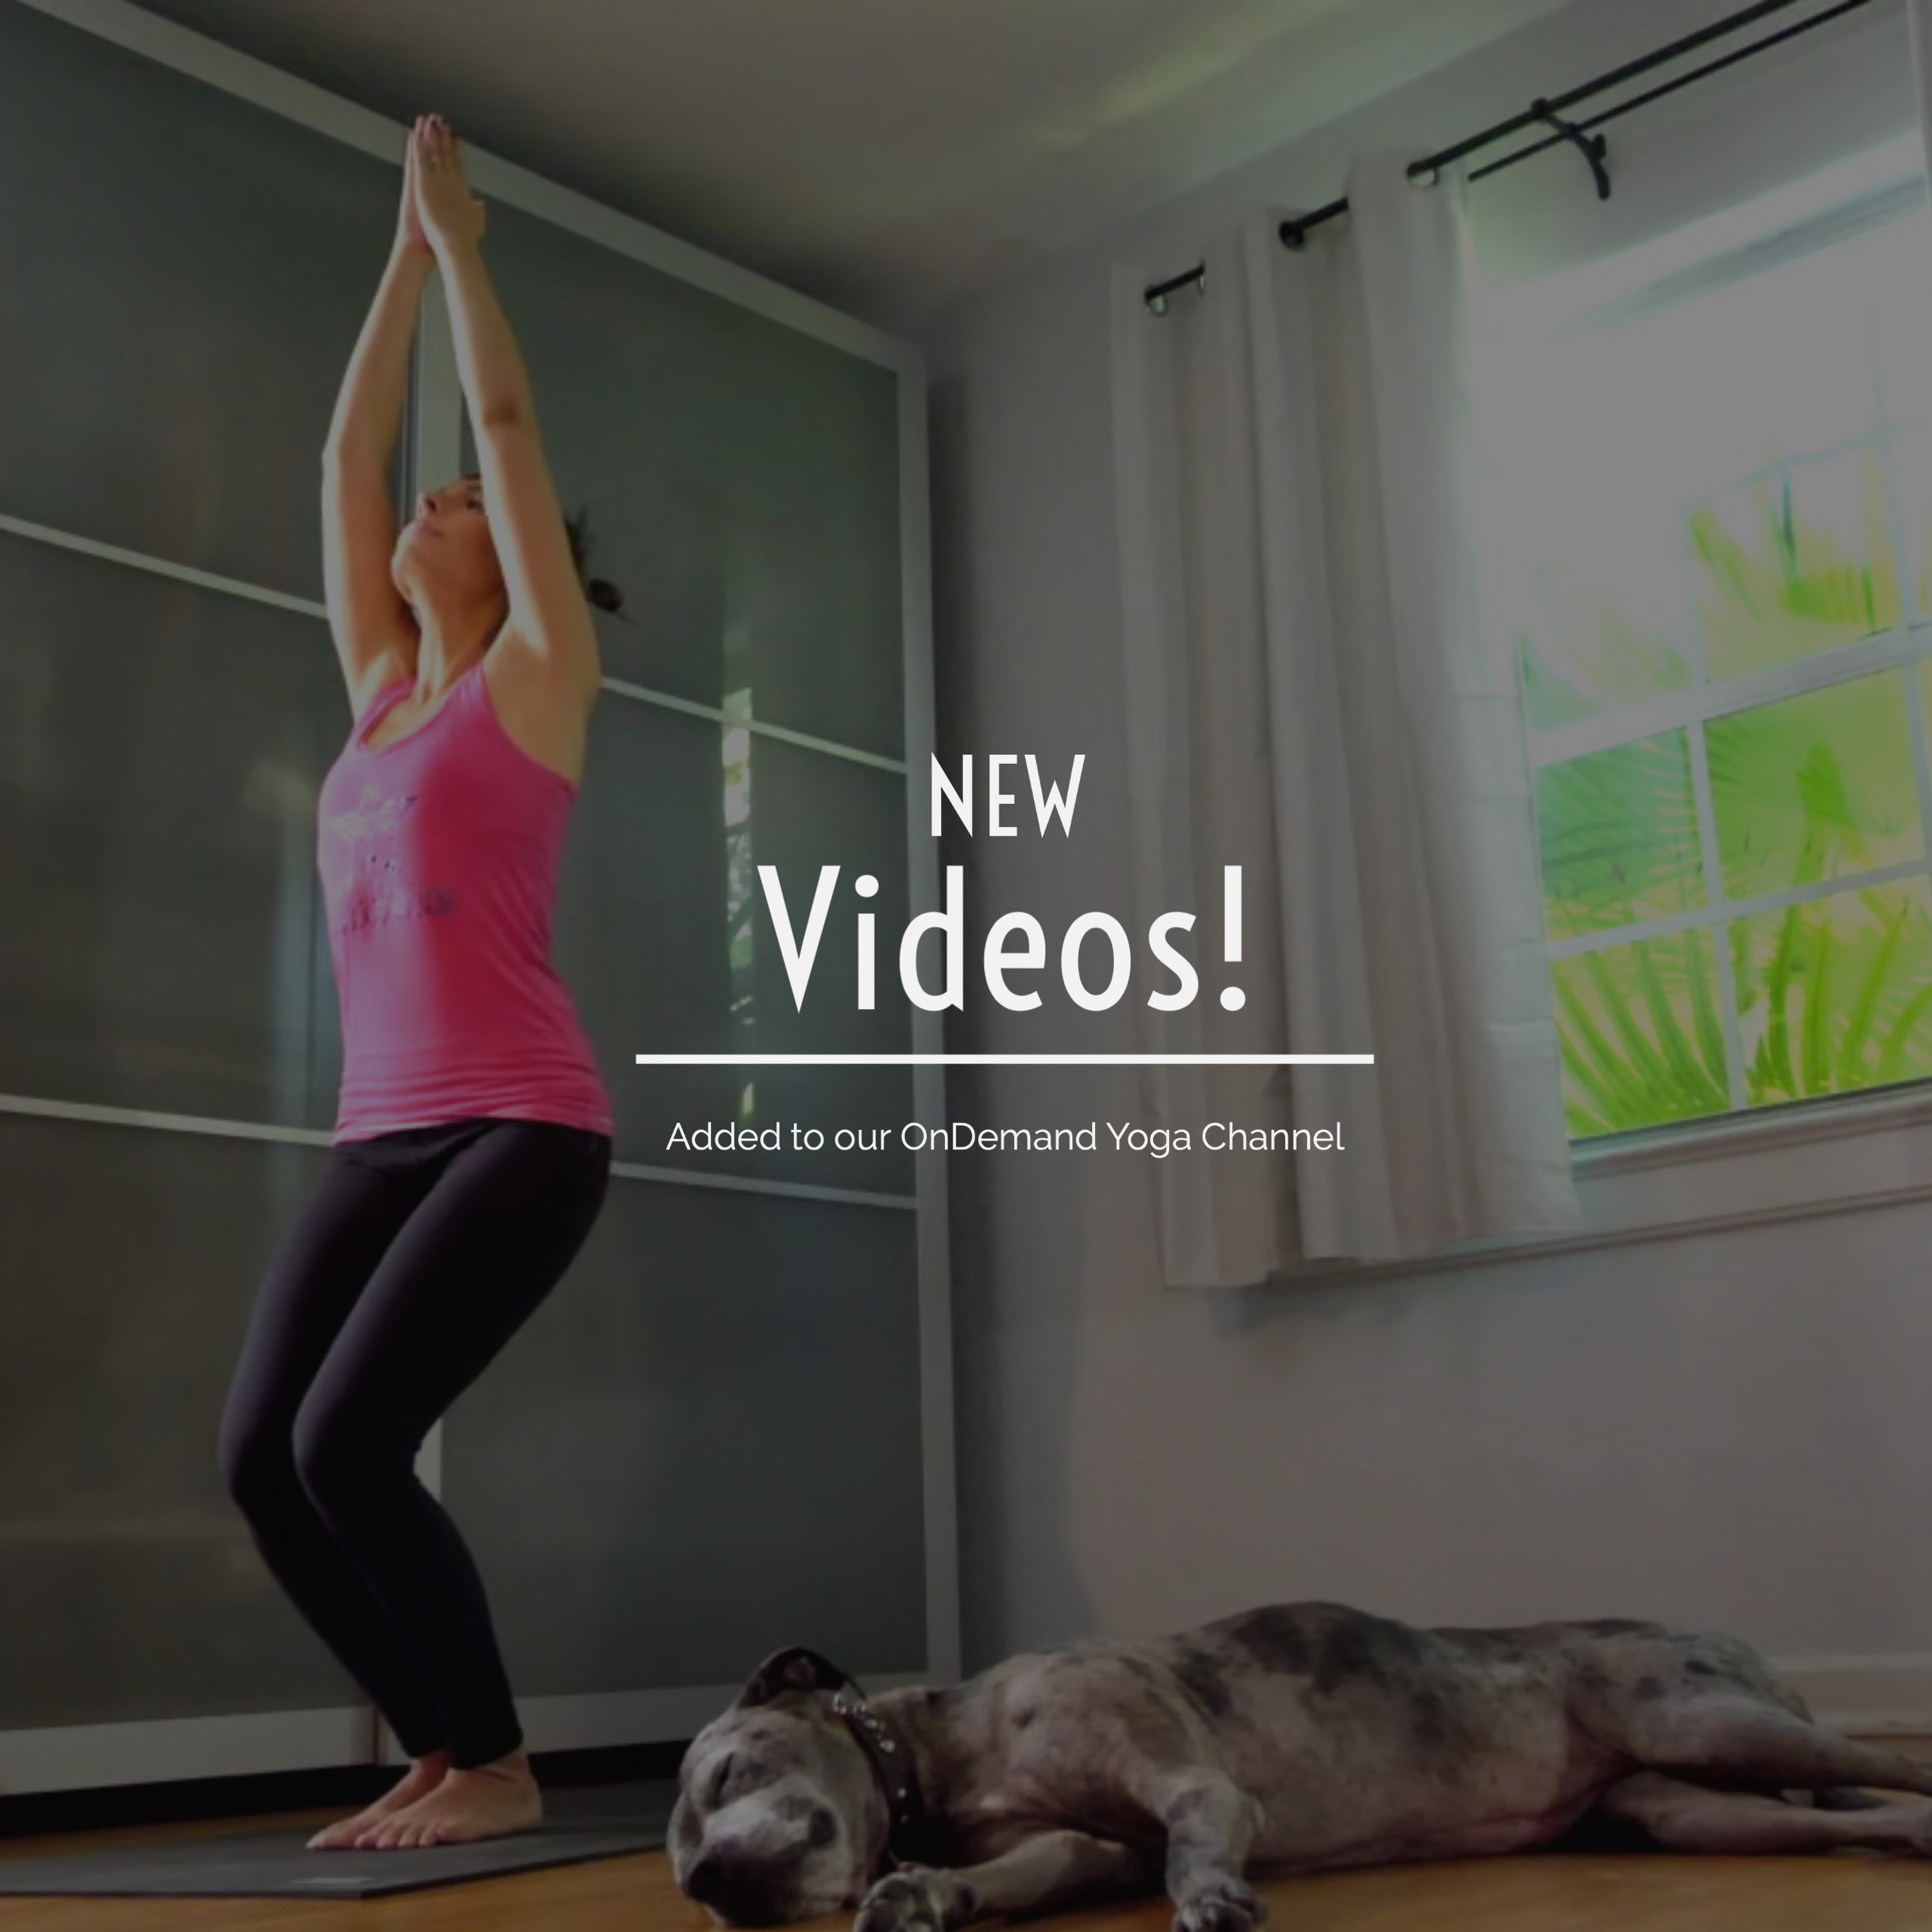 The OnDemand Yoga Channel is getting a facelift! It's now easier than ever to find that fave T&C class you love!